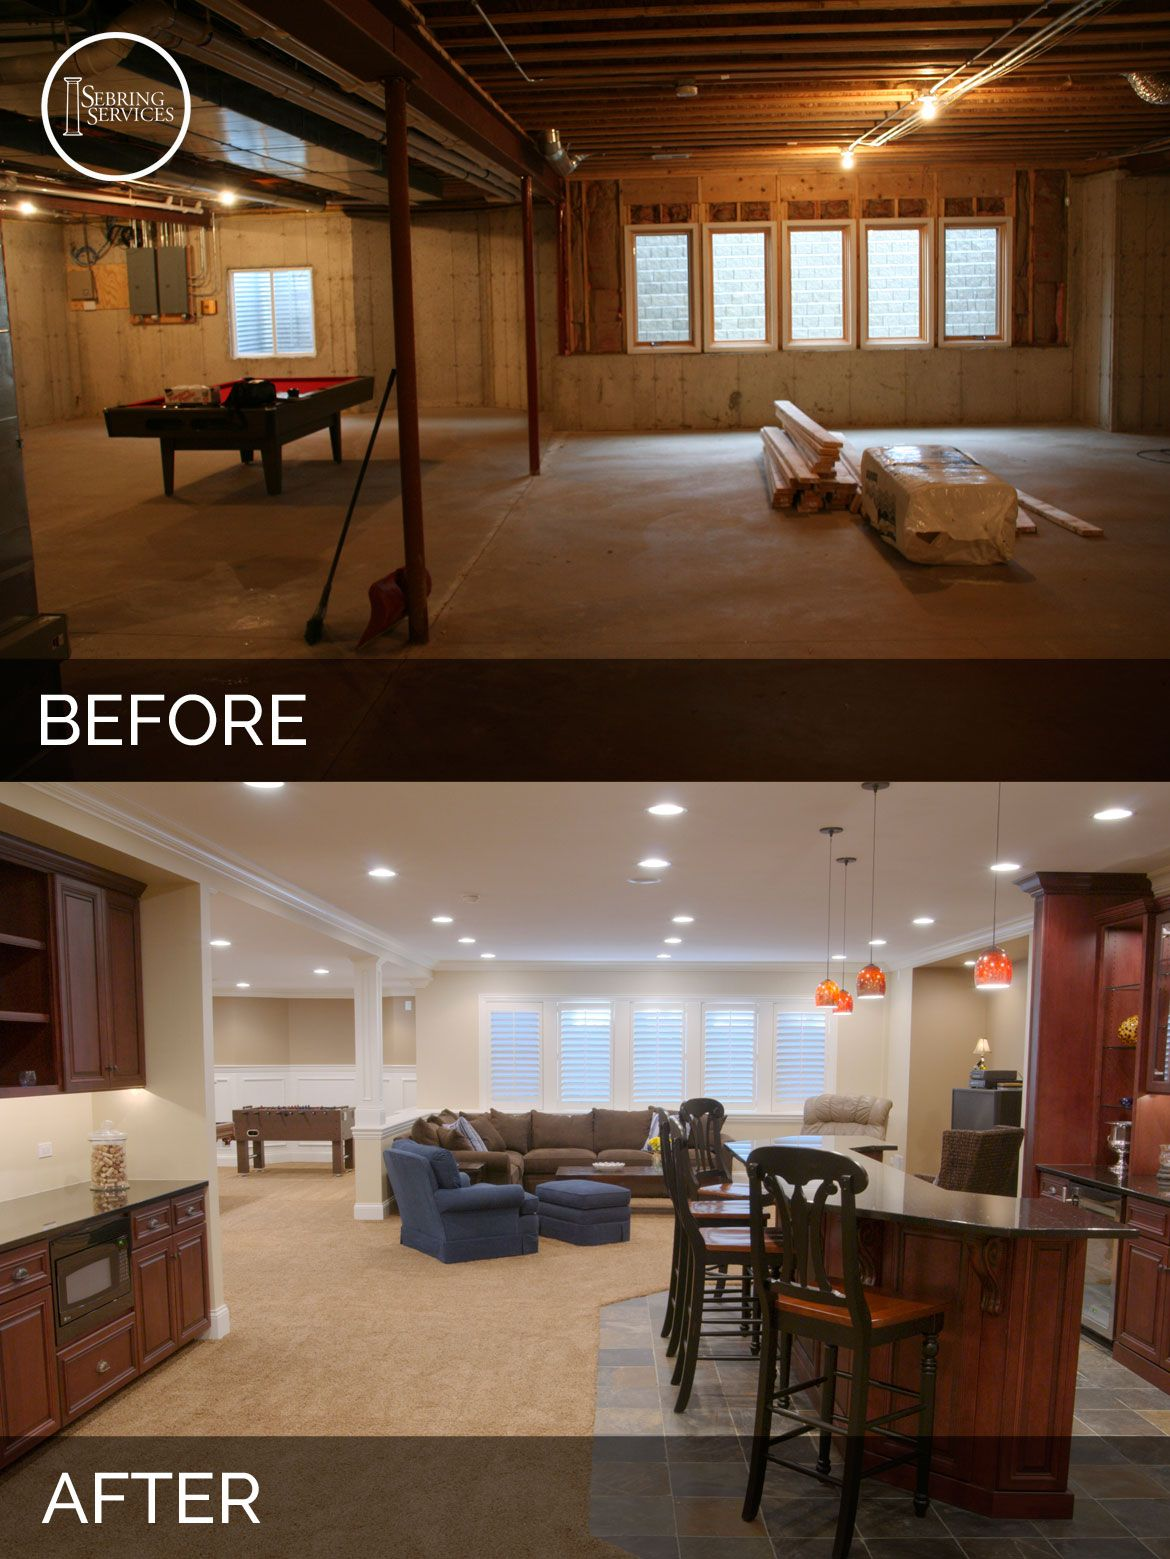 Marvelous Before And After Basement Remodeling   Sebring Services